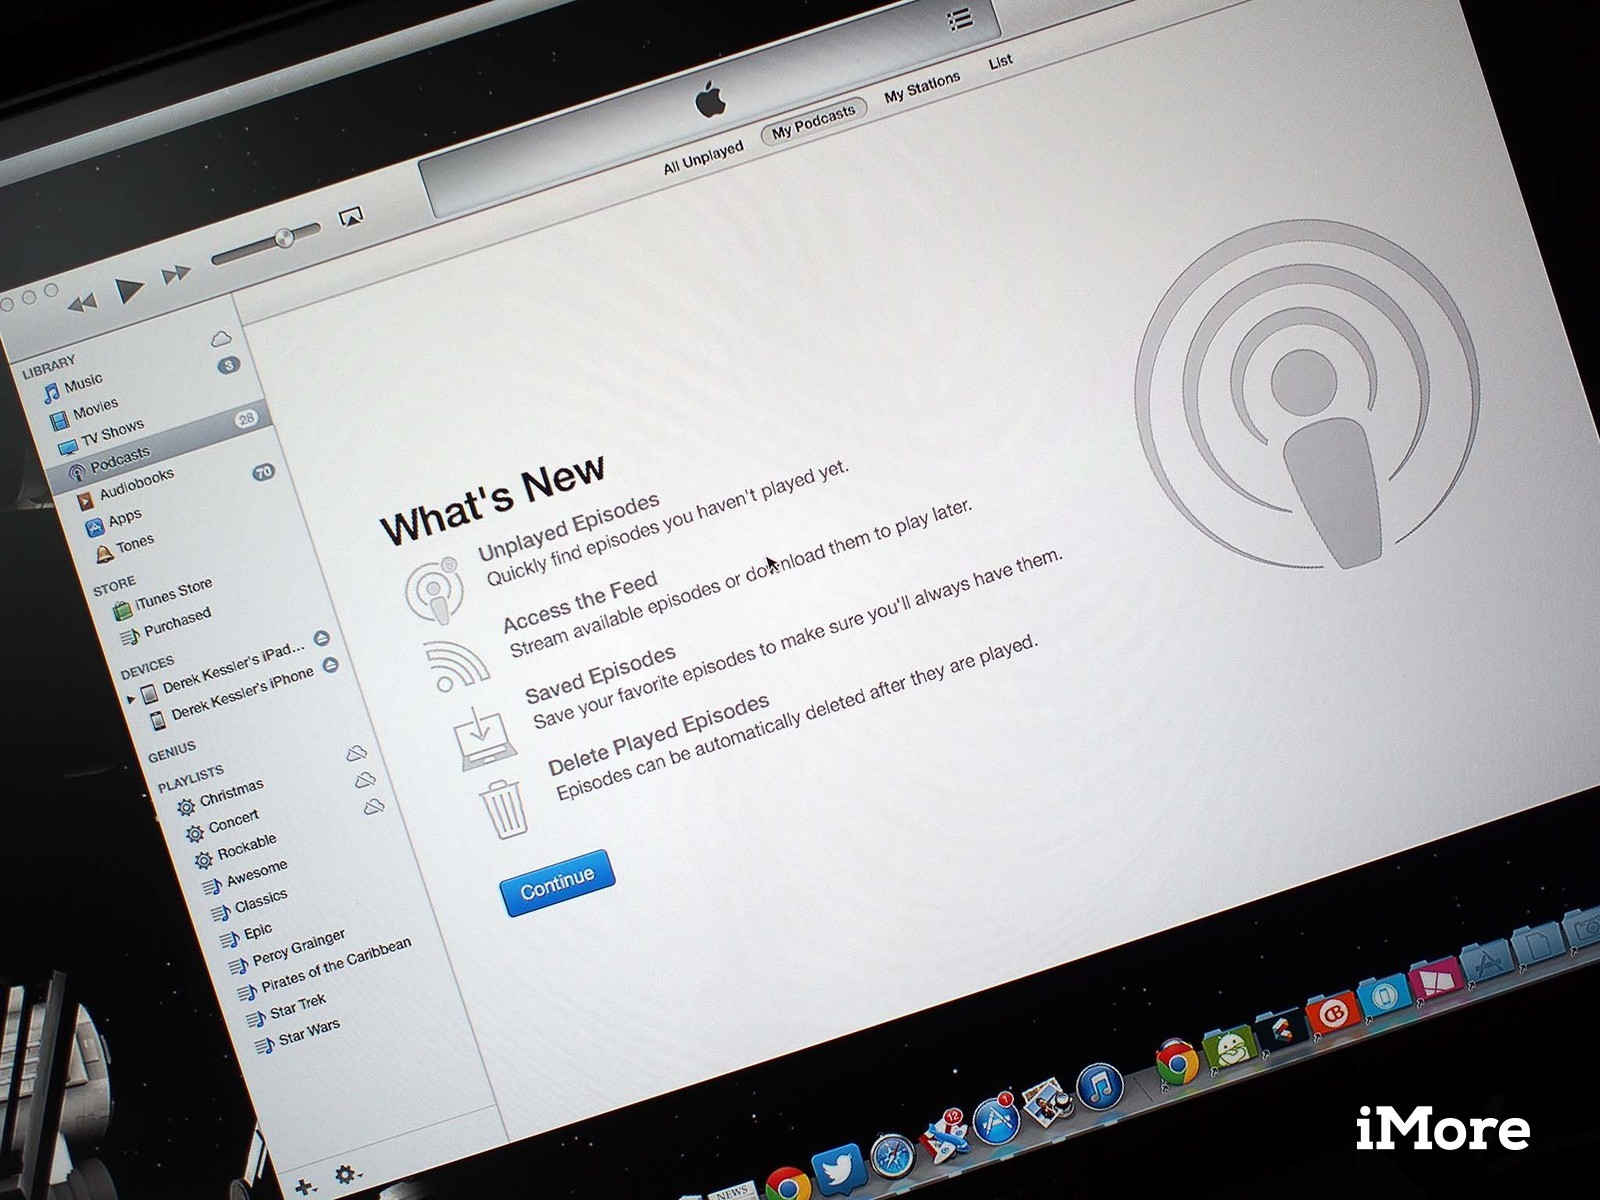 iTunes 11.3 brings iTunes Extras to the Apple TV